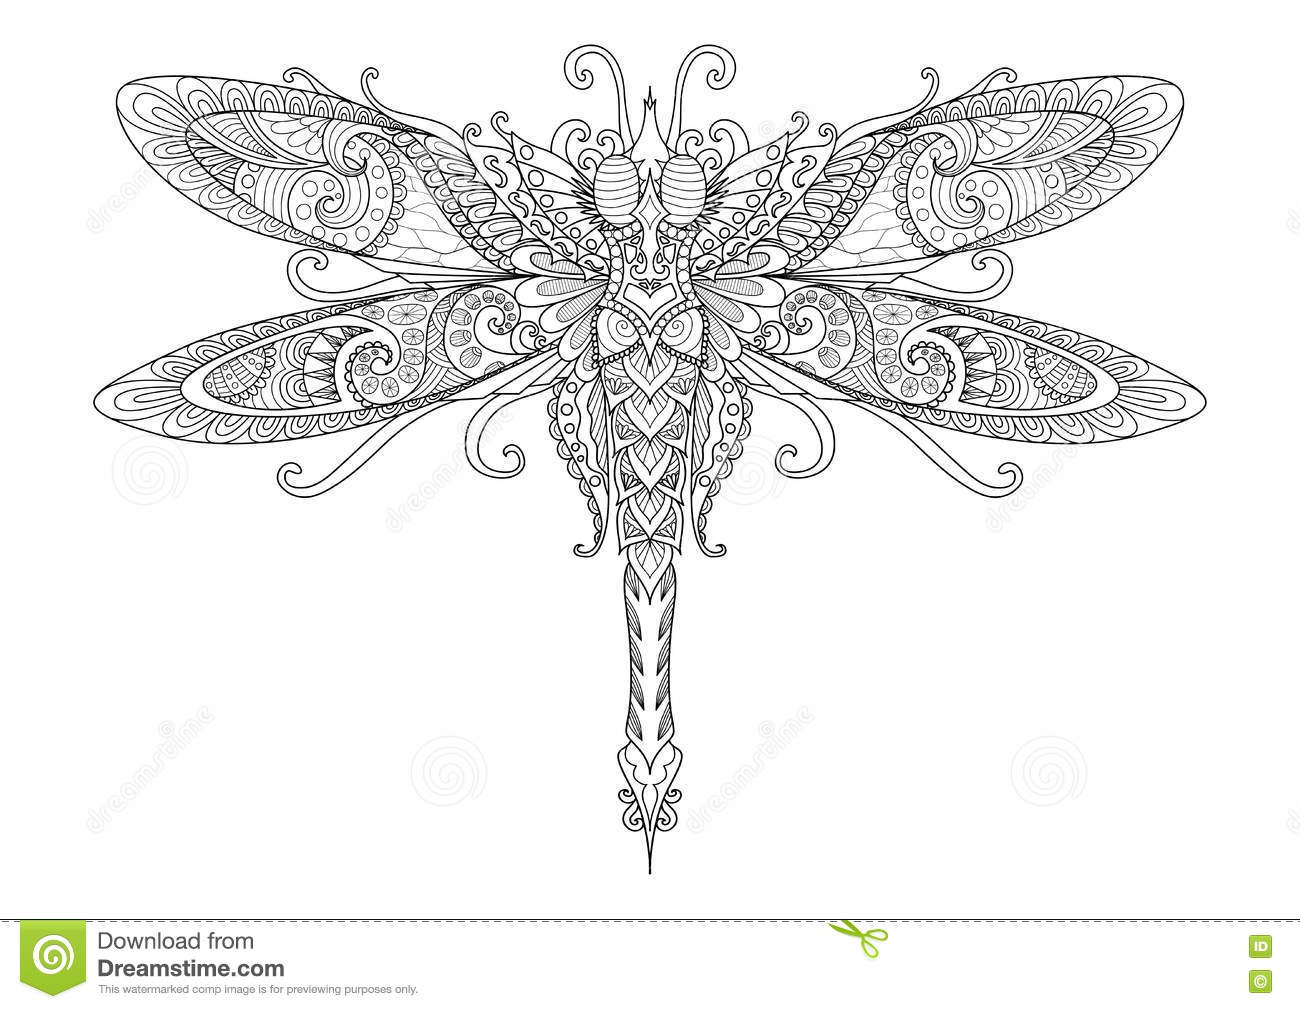 Tattoo designs coloring book - Adult Book Coloring Design Dragonfly Graphic Shirt Tattoo